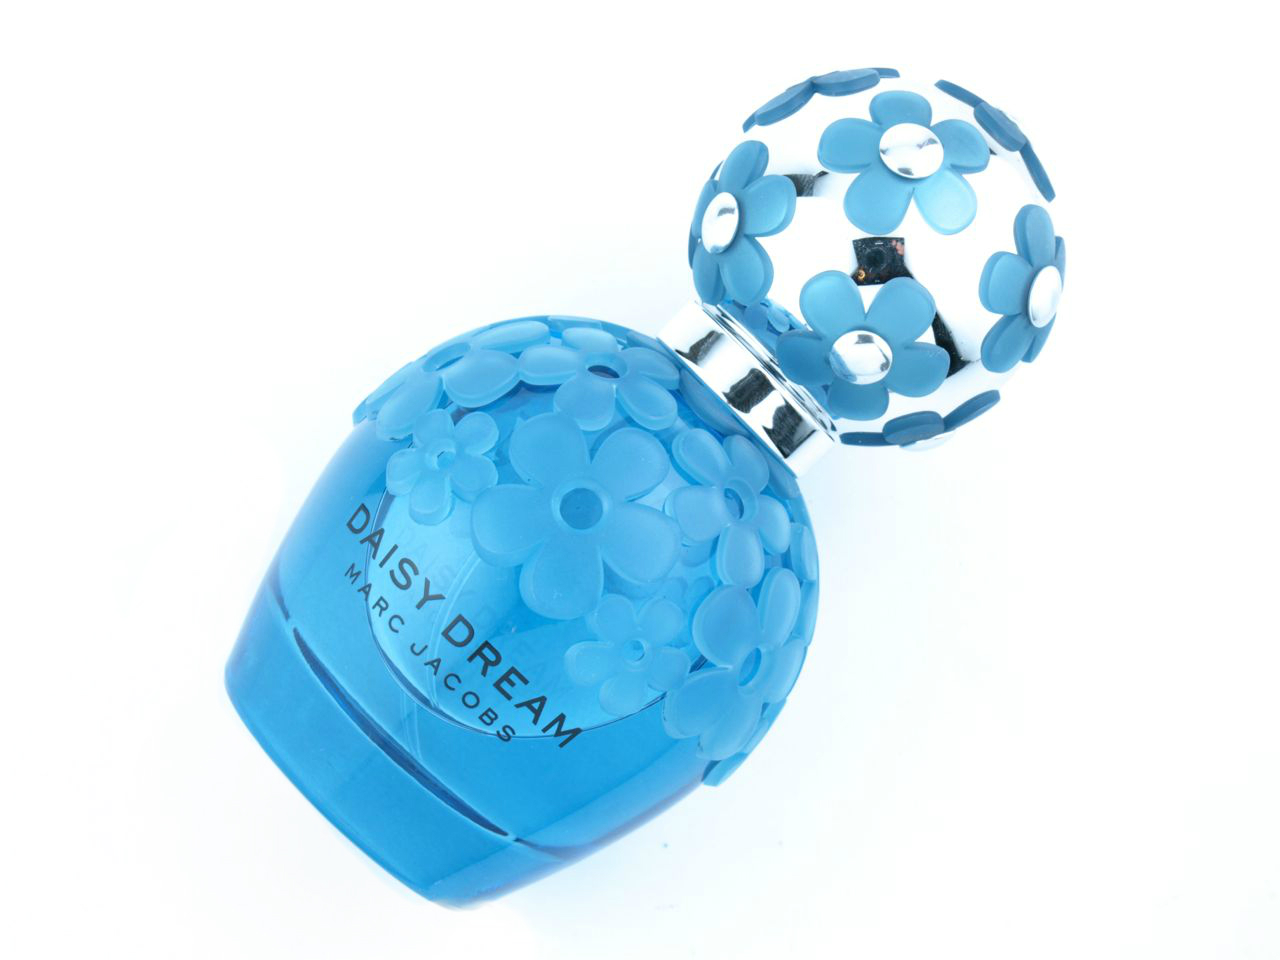 Marc Jacobs Daisy Dream Forever Eau de Parfum: Review